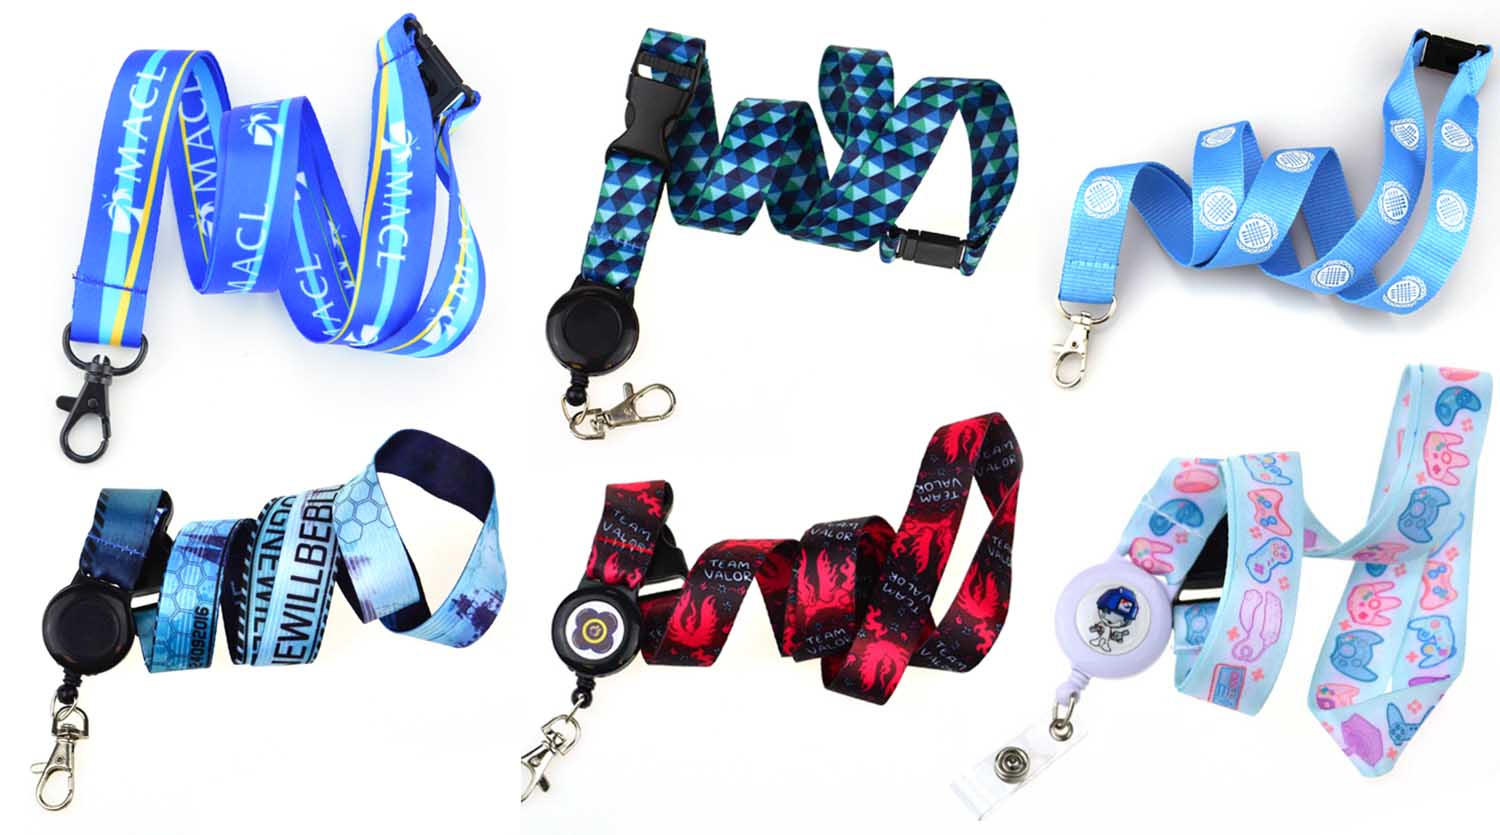 Cheap promotion custom plastic fashion lanyard id card badge holder attachment